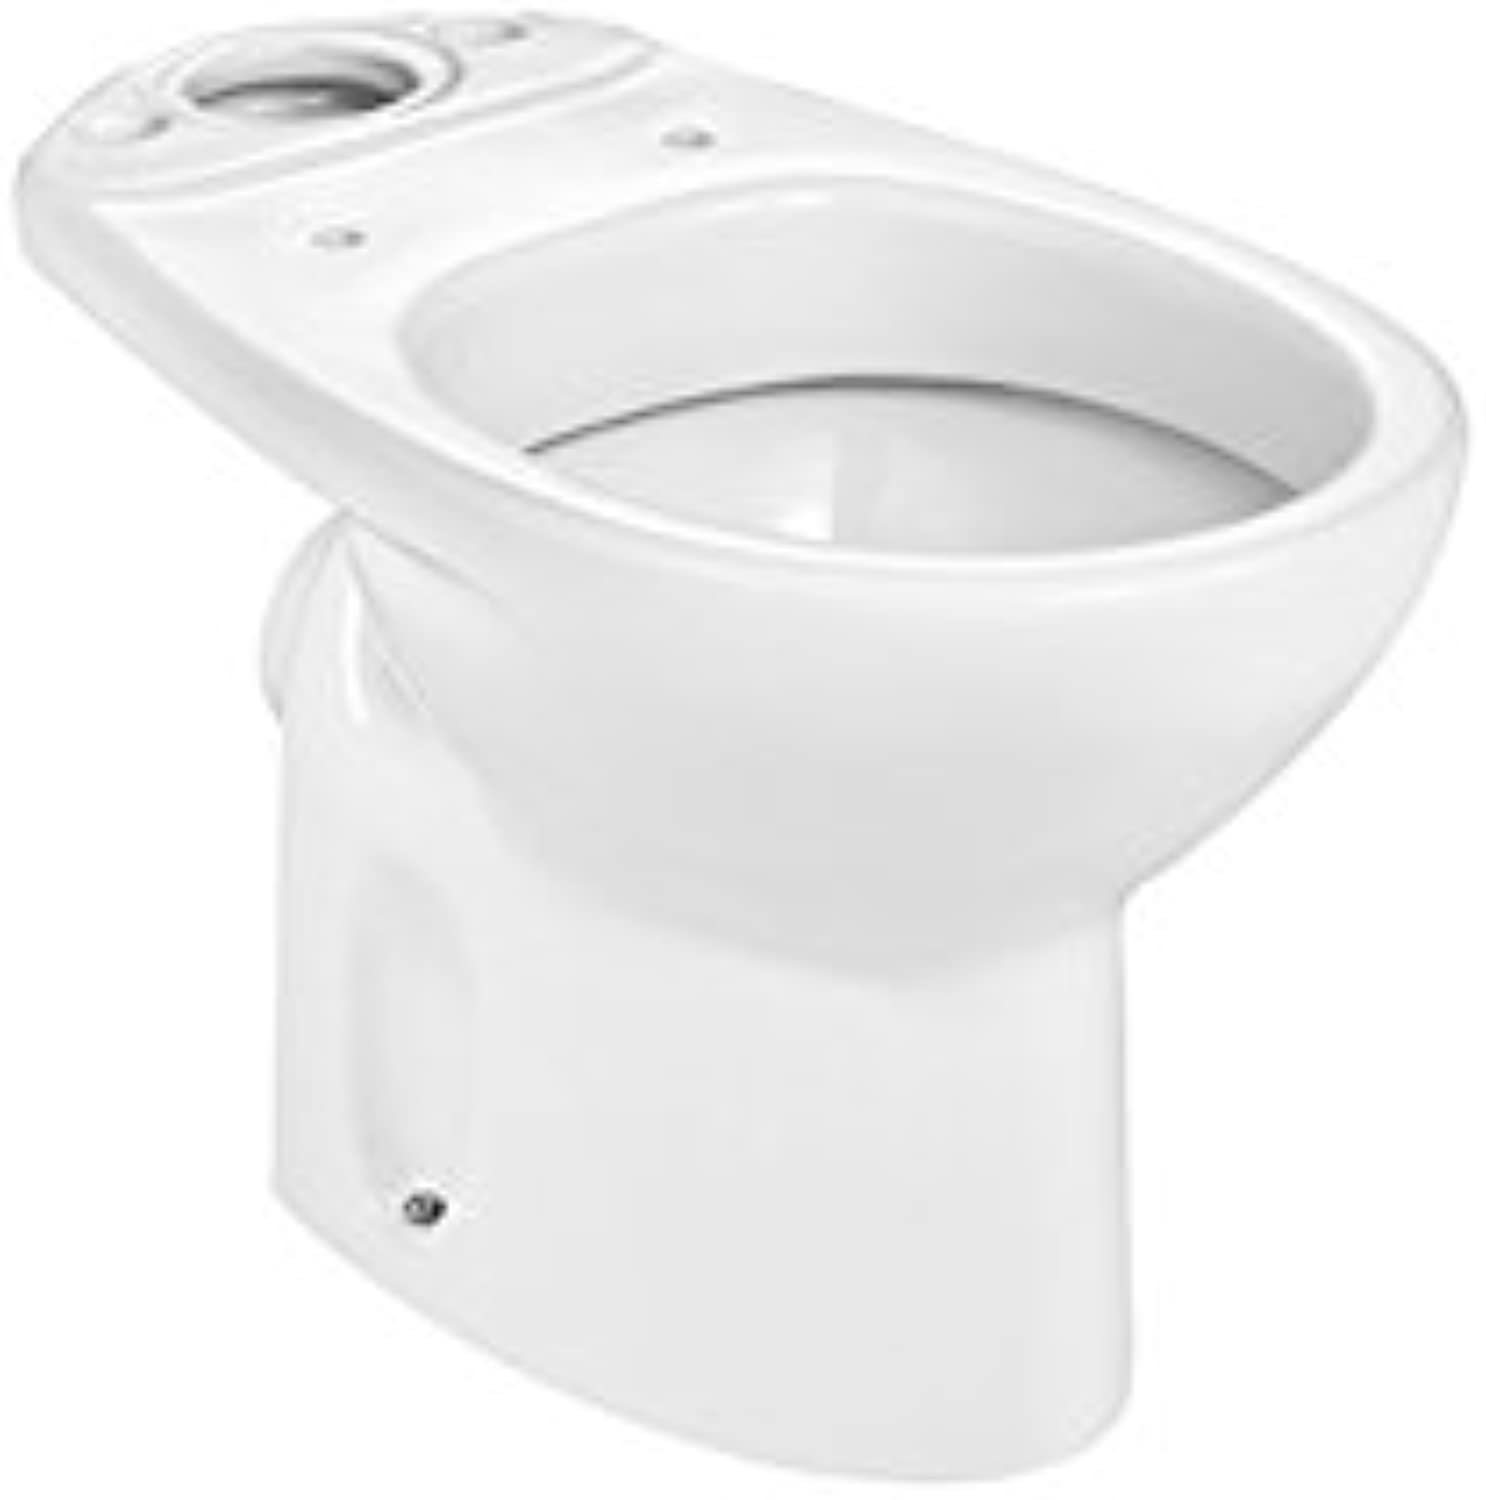 Rock a342395000?Collection Victoria Mug?–?Output Wall, (Cistern and Seat Not Included), White